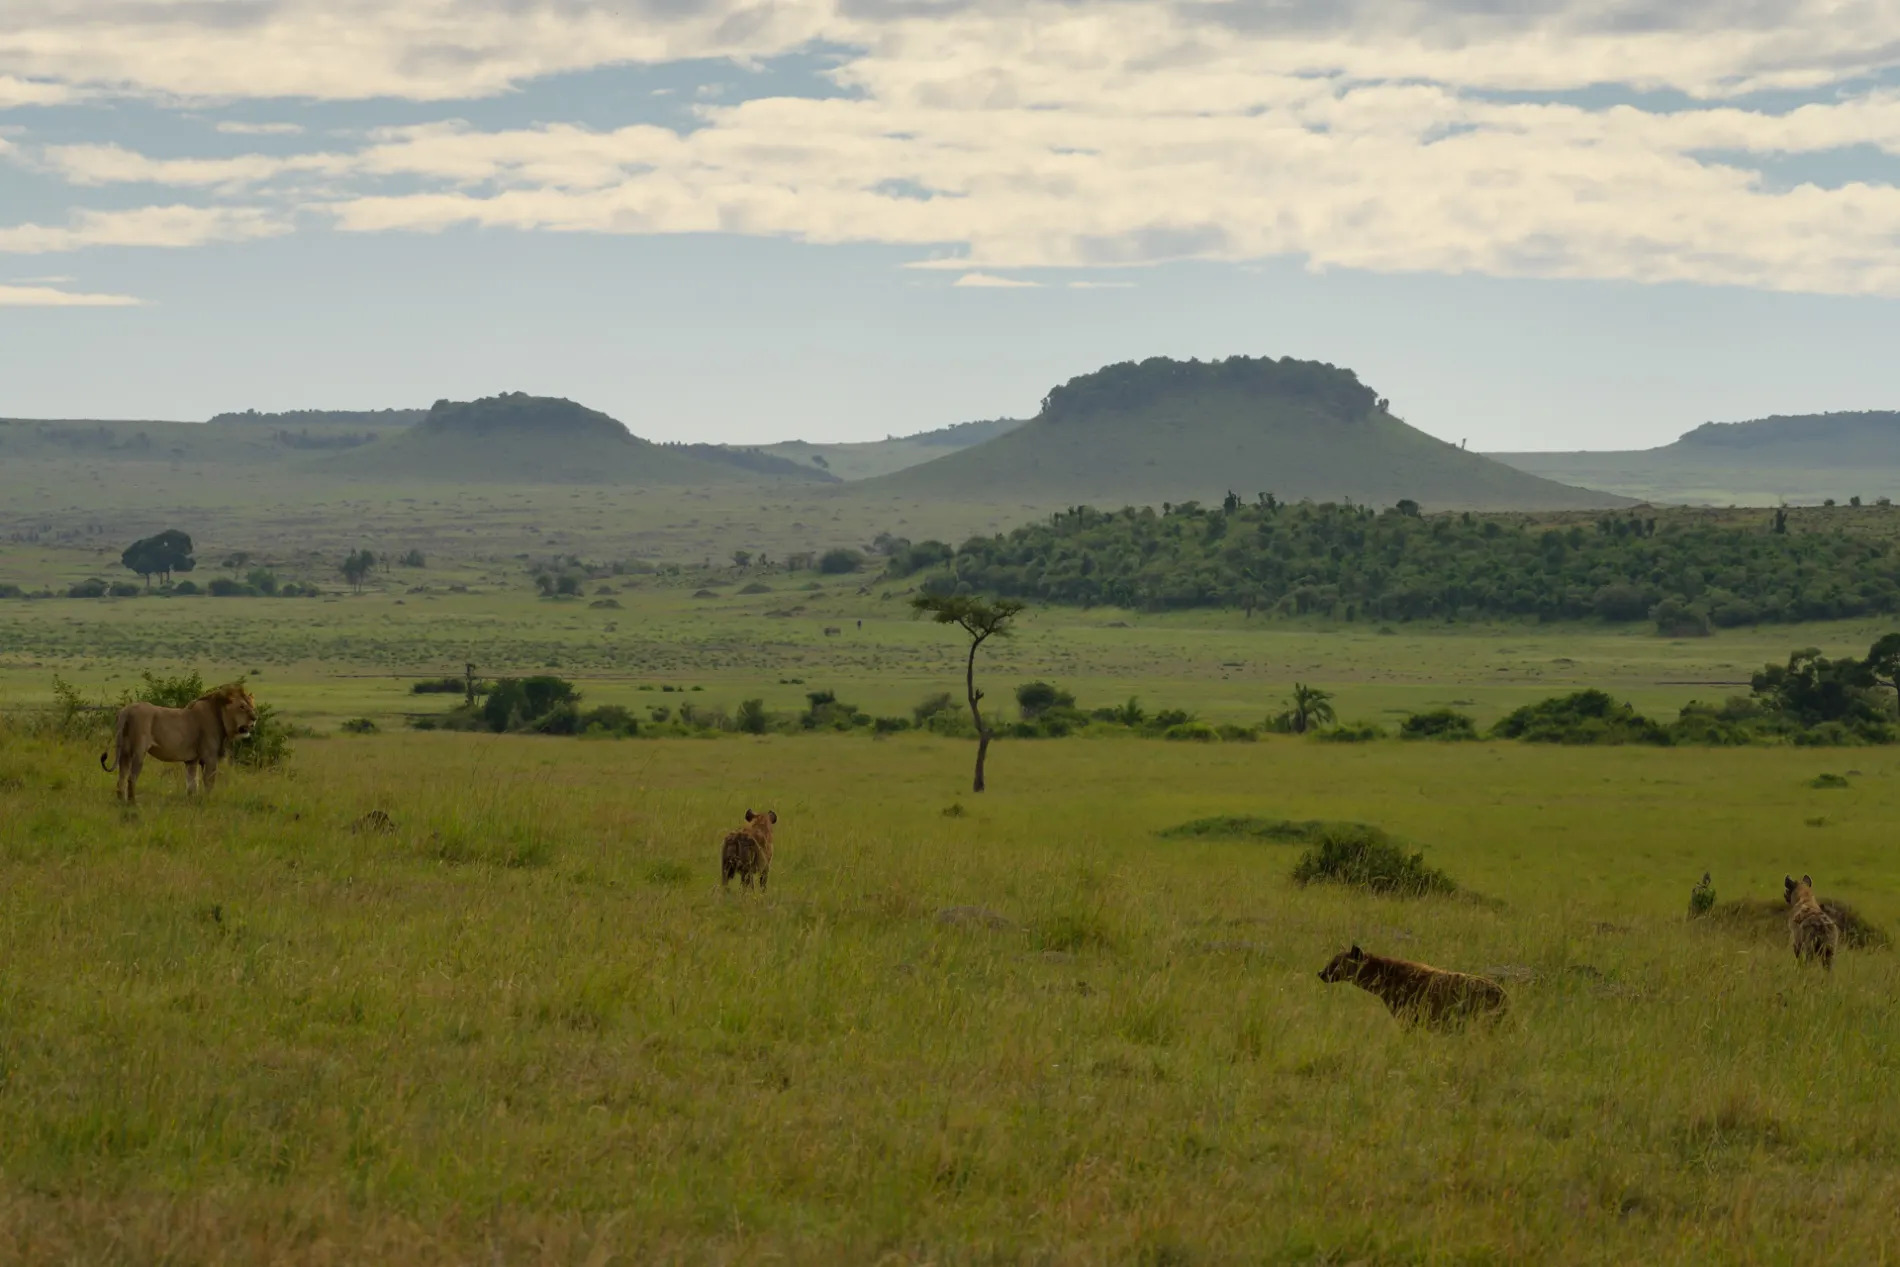 Maasai lions and mountains in background